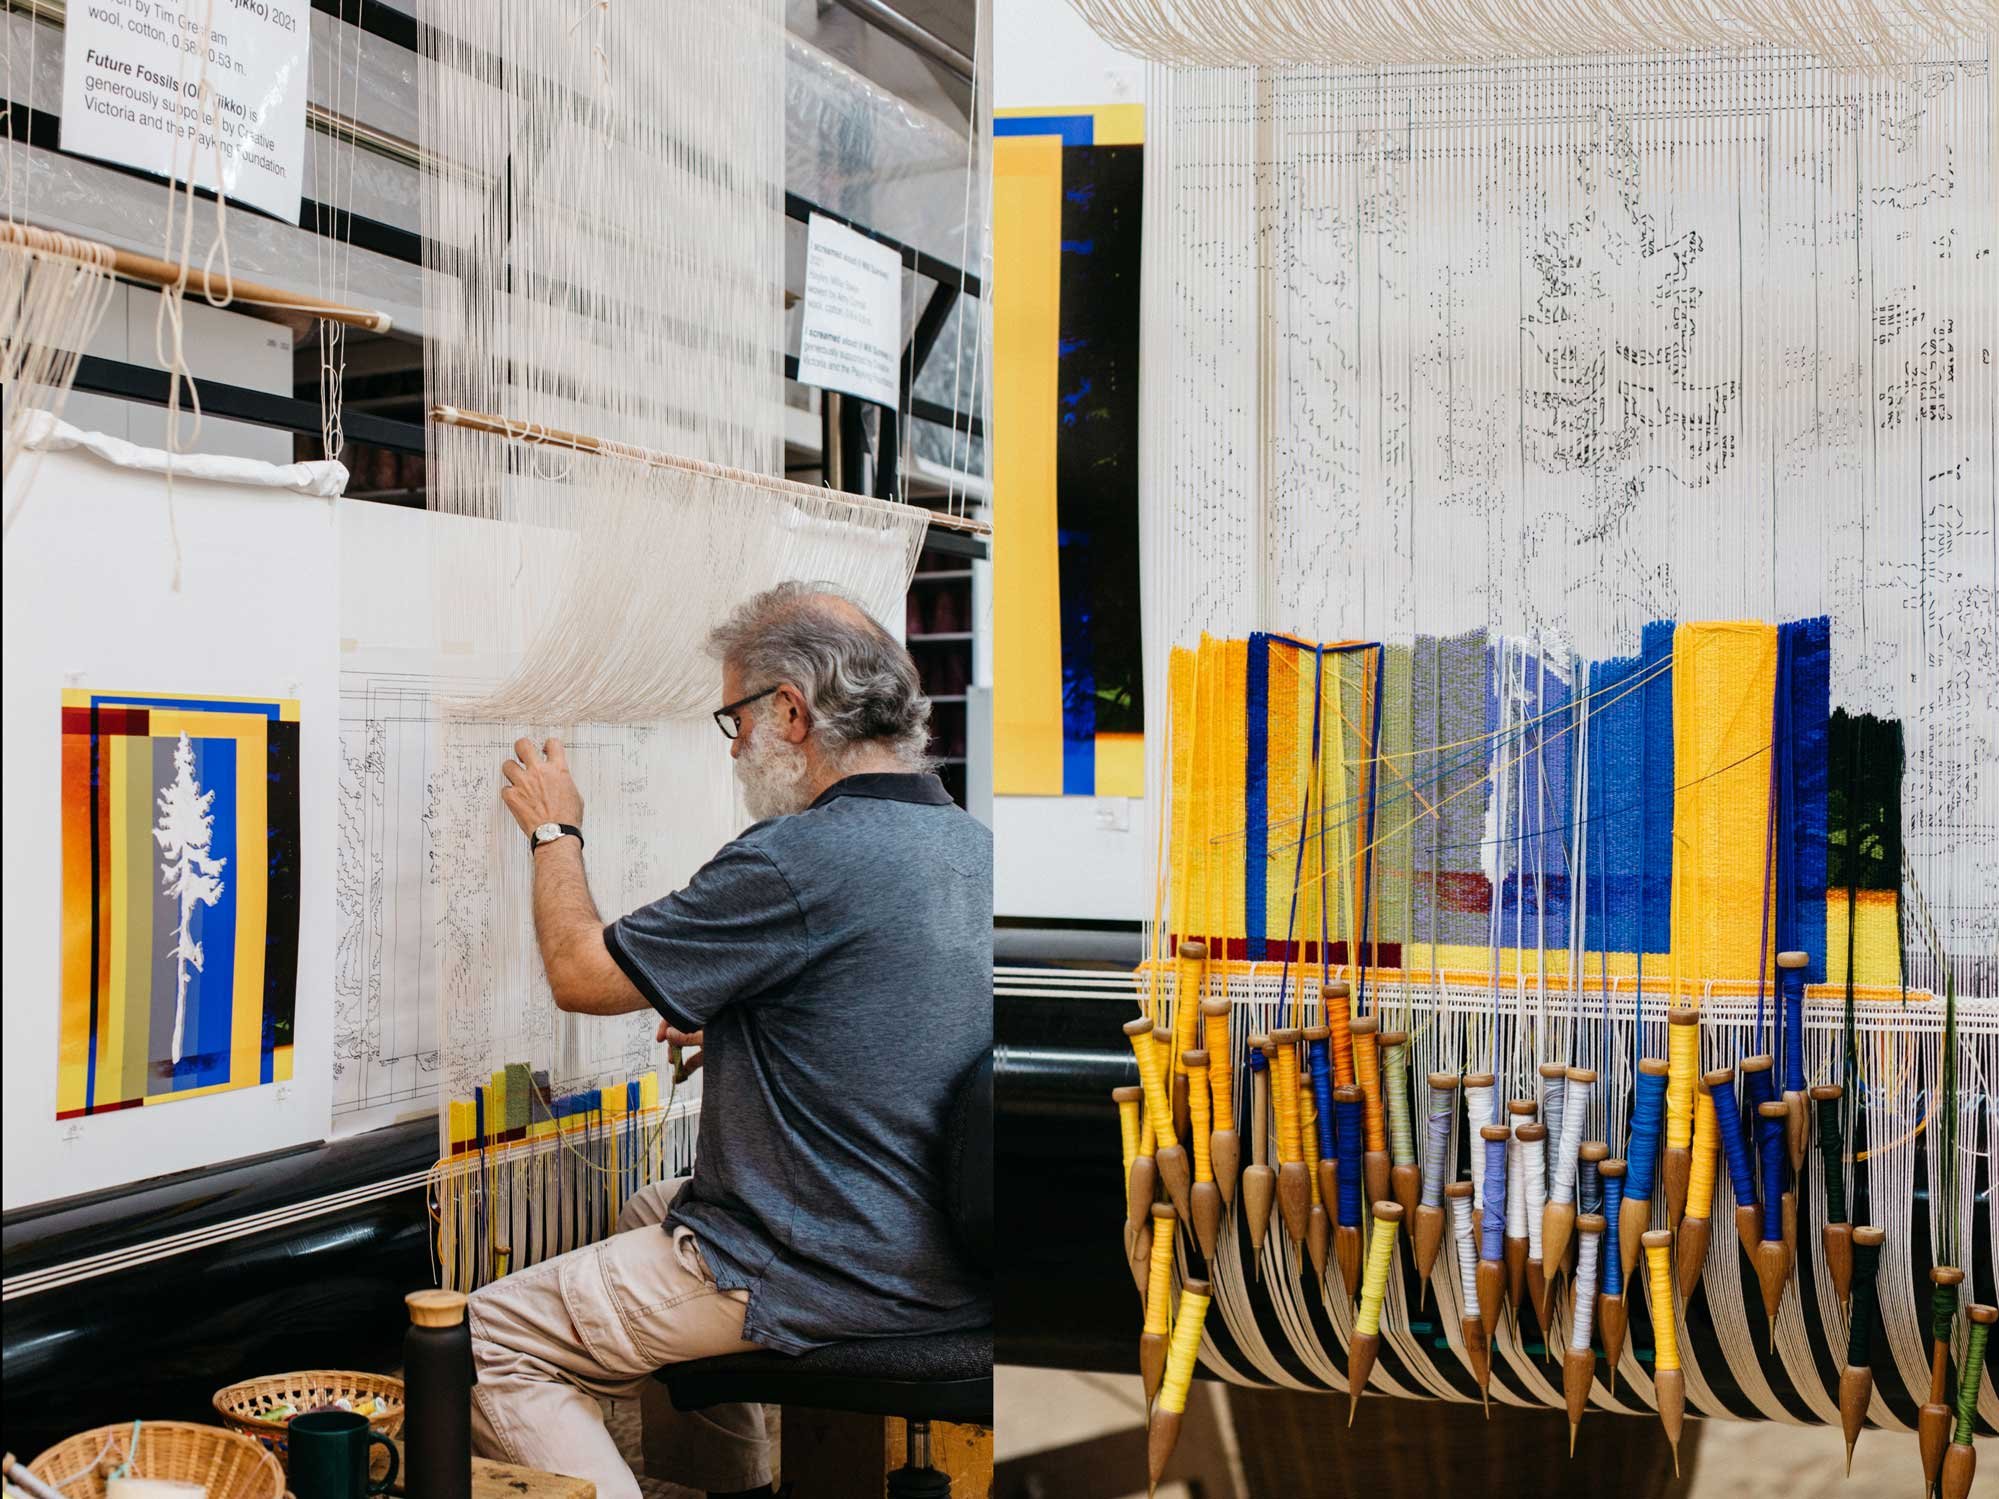 Tapestry in progress: 'Fossil Futures (Old Tjikko)', 2021, designed by Eugenia Lim, woven by Tim Gresham. Images courtesy of Marie-Luise Skibbe.